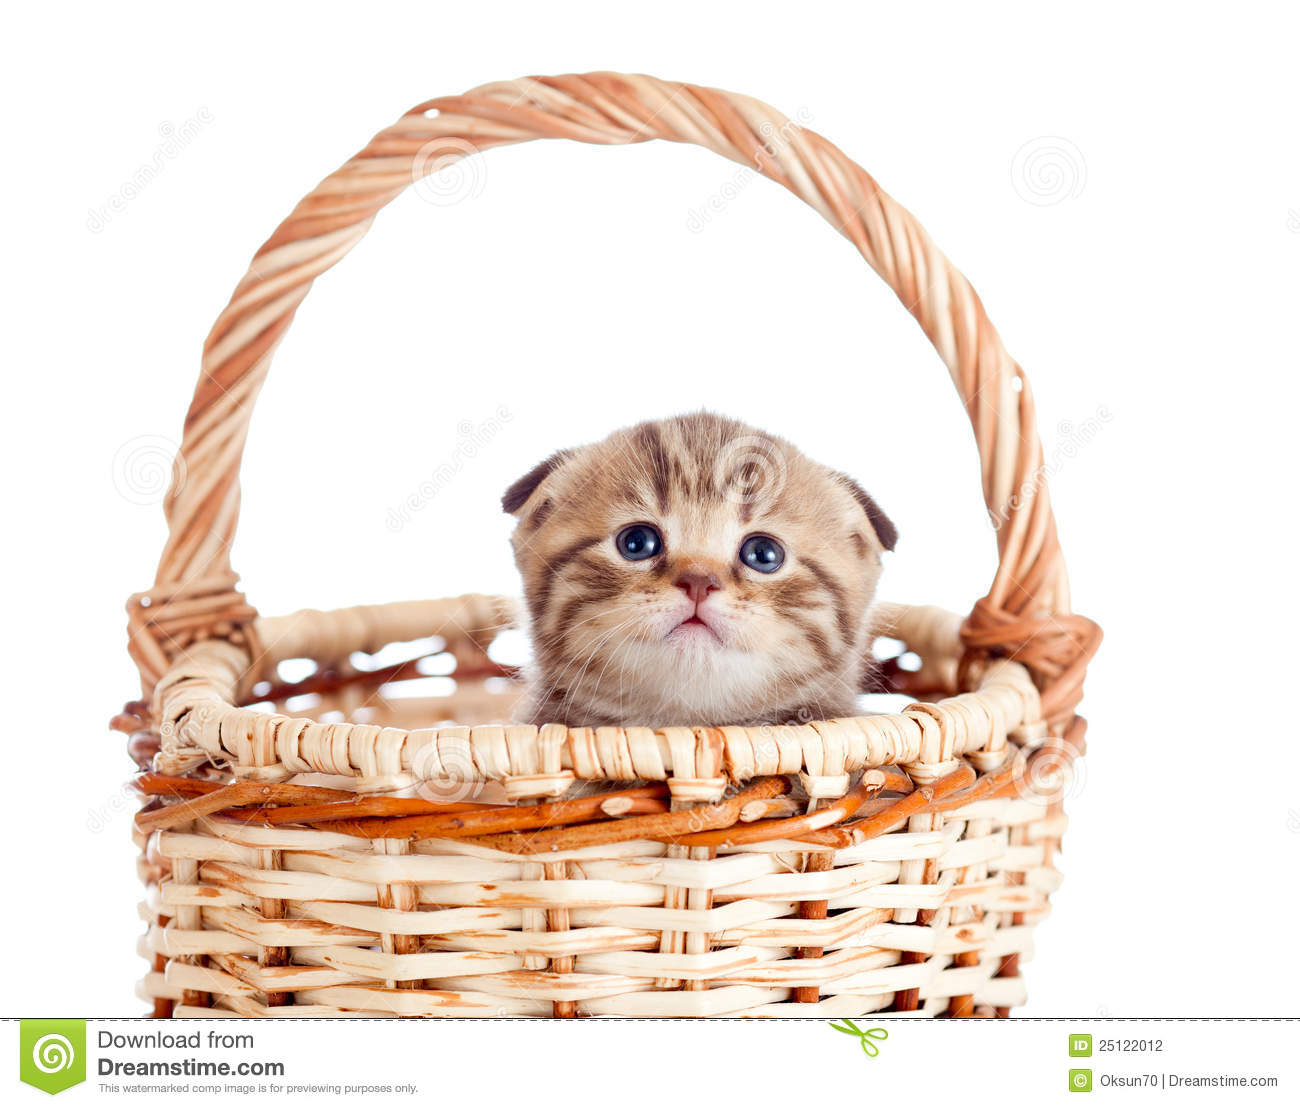 Cat Basket Clipart : Funny baby cat sitting in basket stock photography image